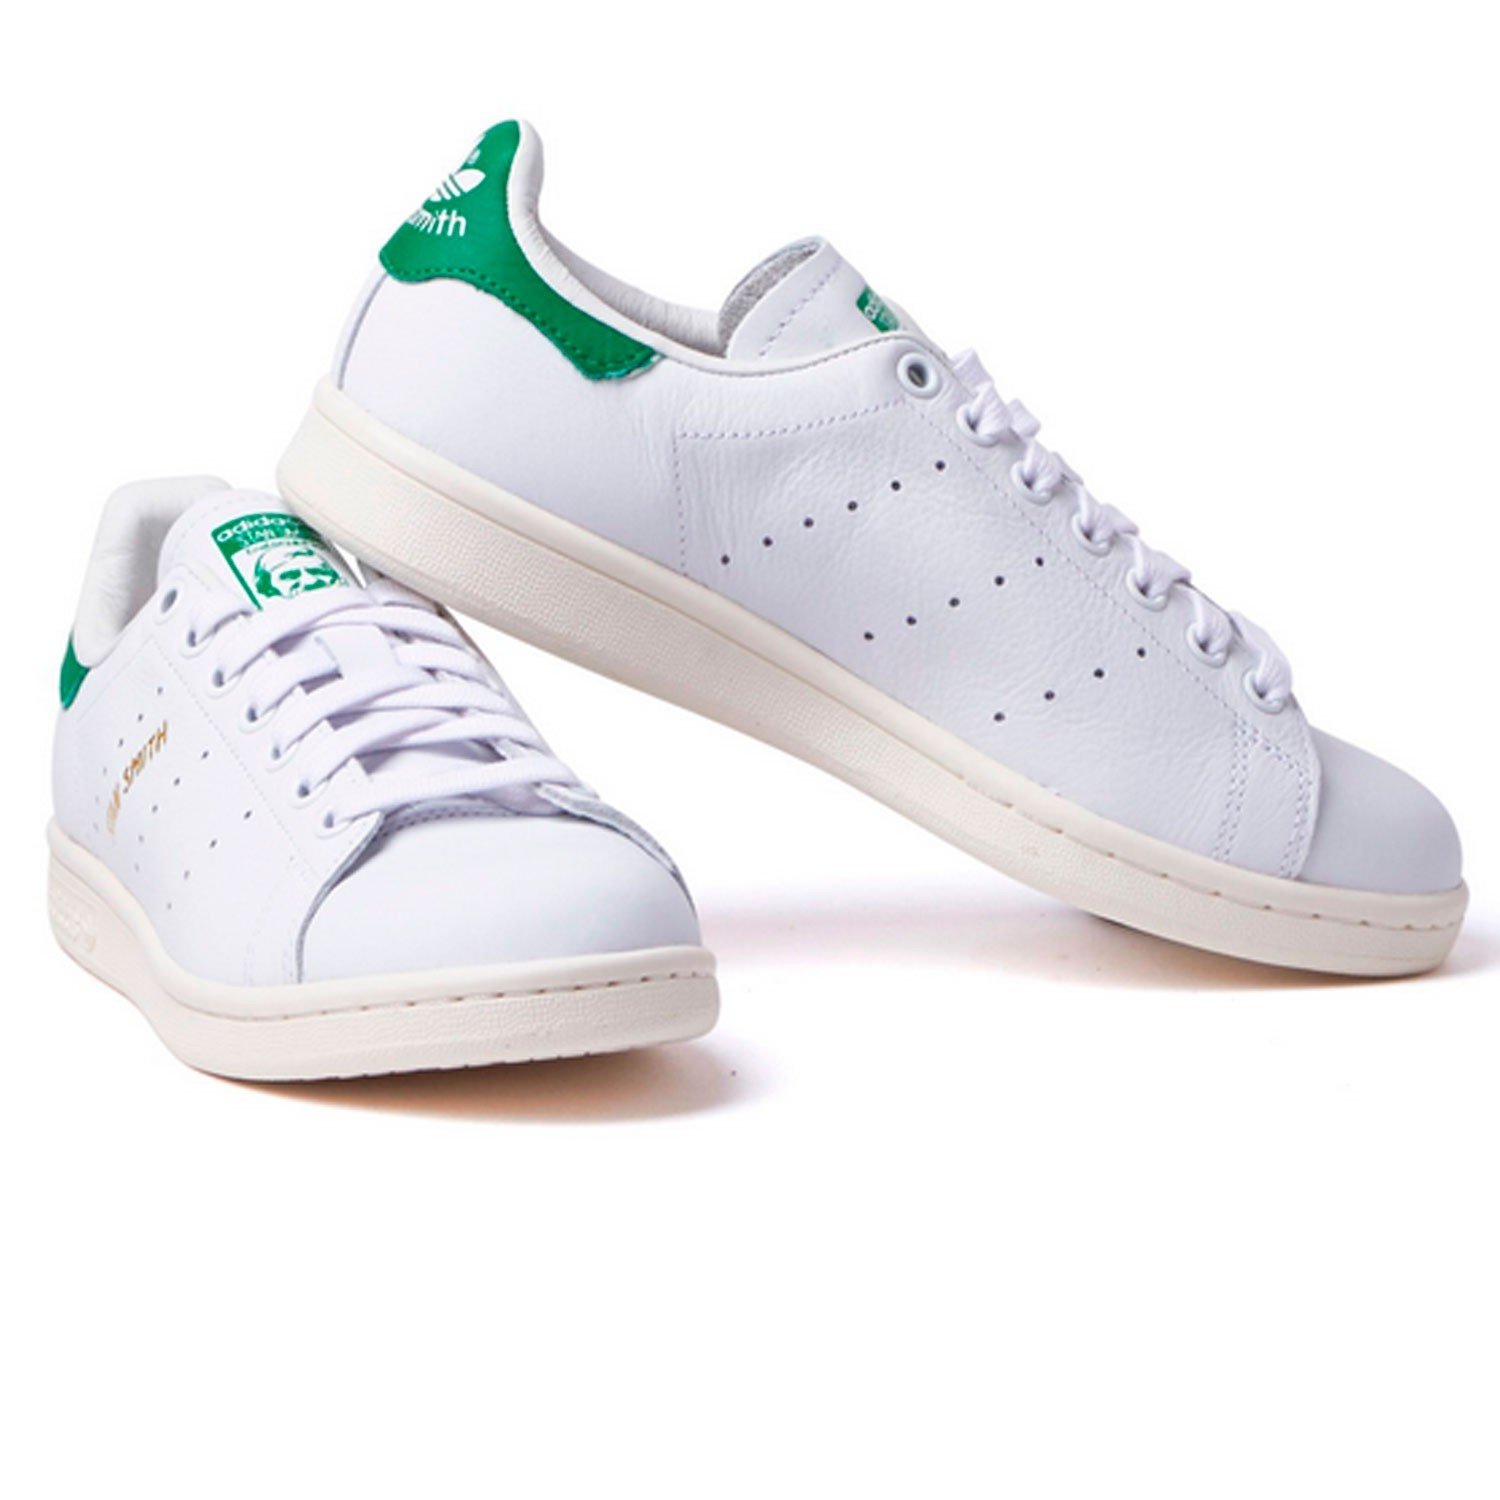 adidas stan smith edicion especial